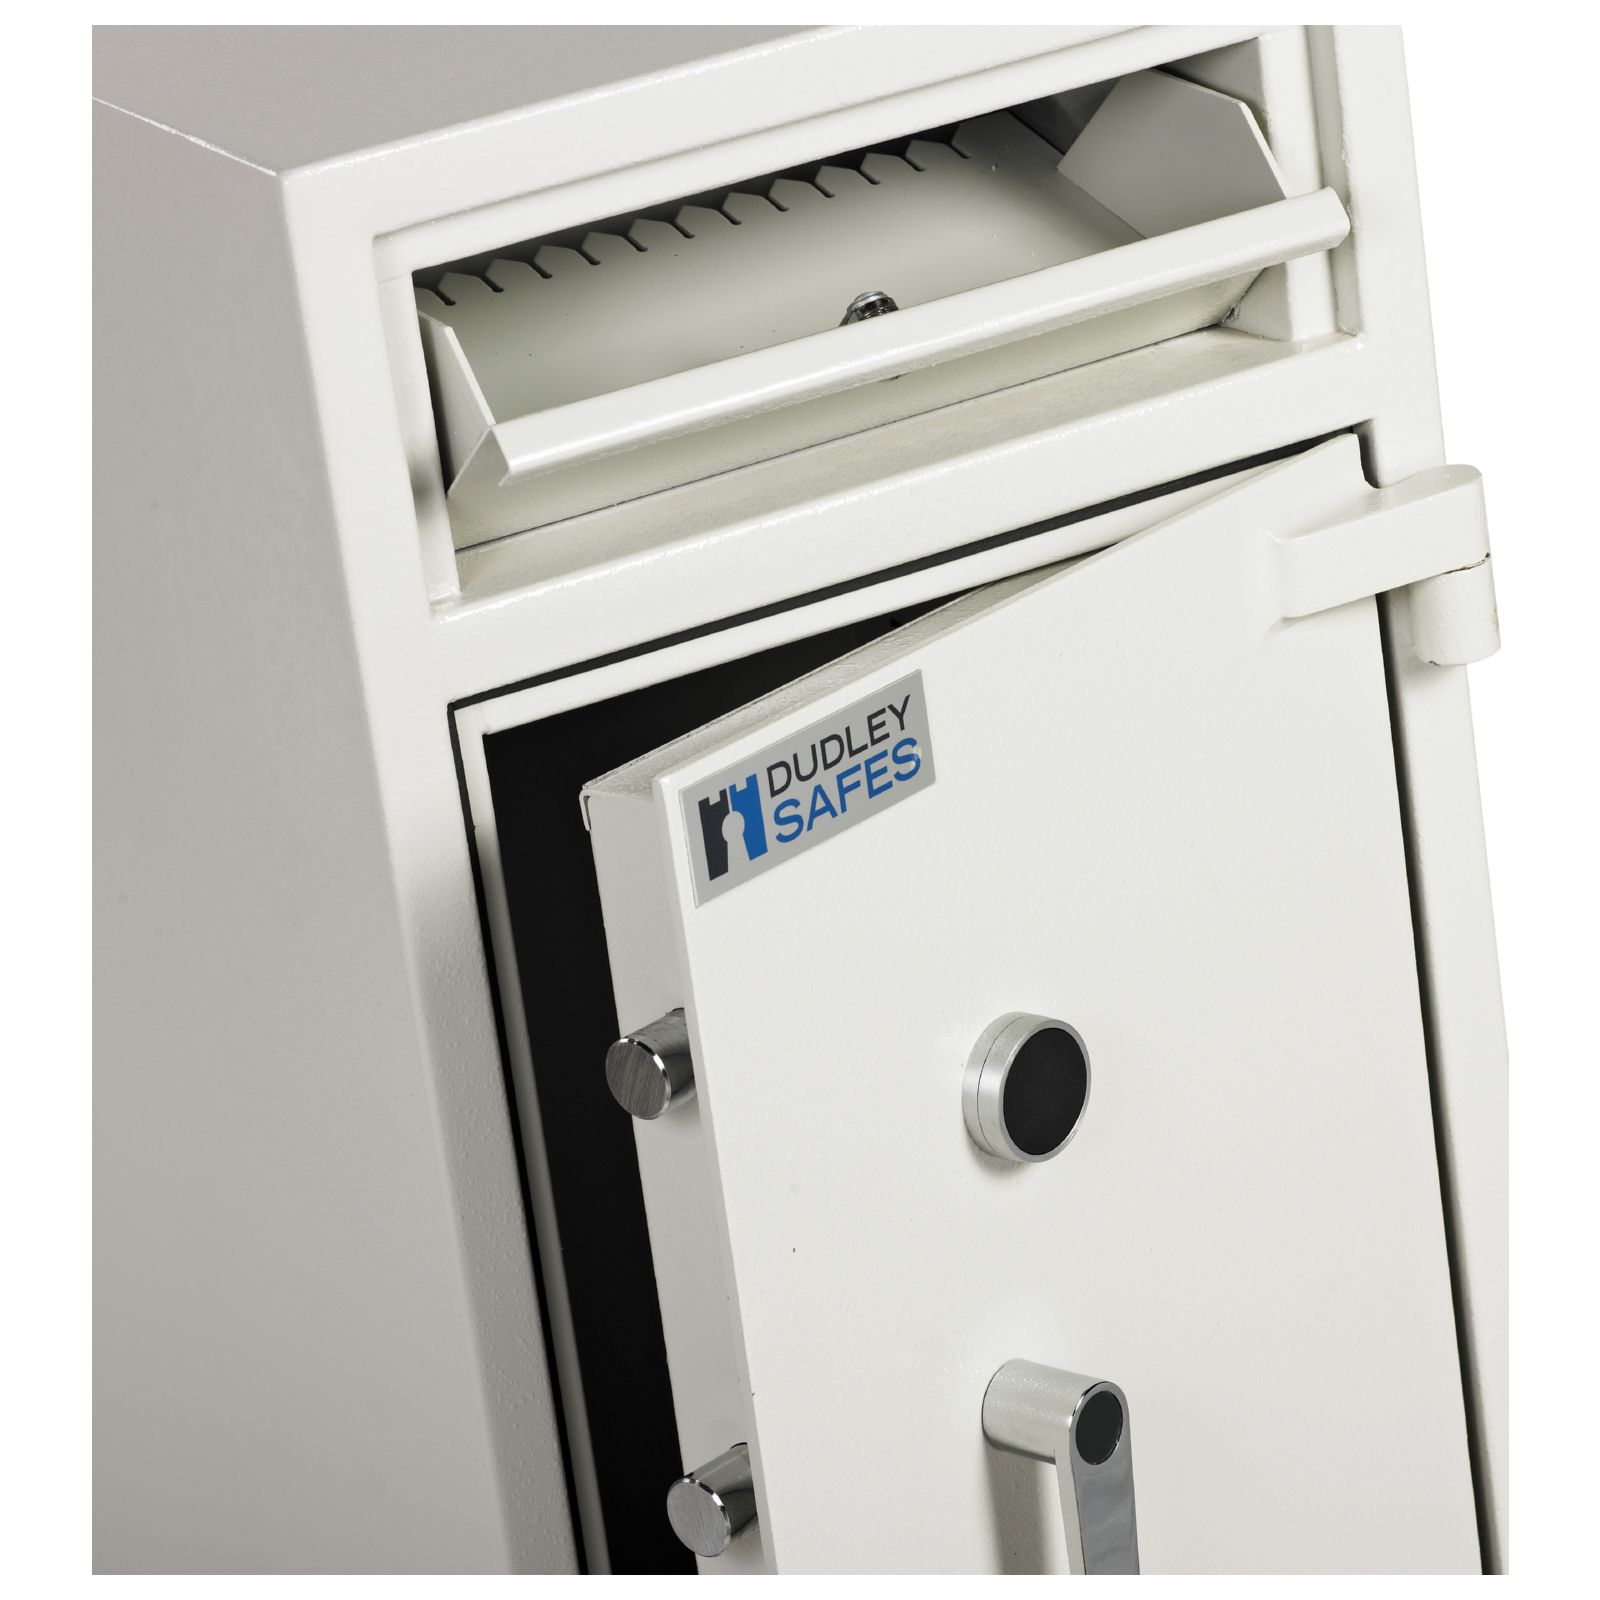 Deposit Drop Safes for Shops